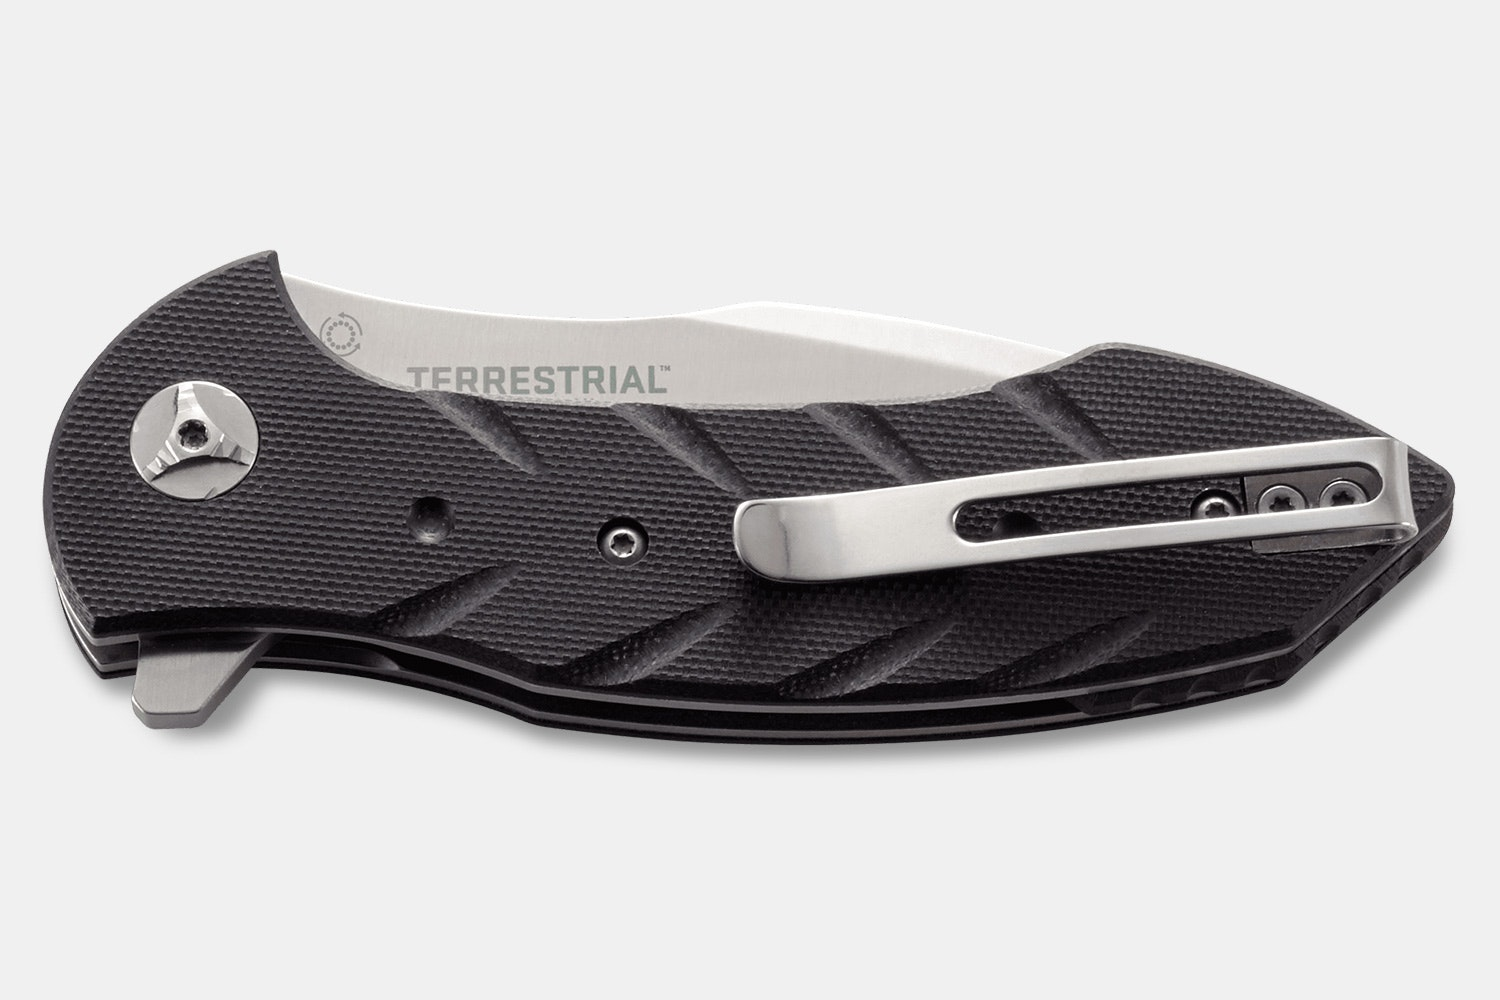 CRKT Terrestrial Liner Lock Knife - Massdrop Debut